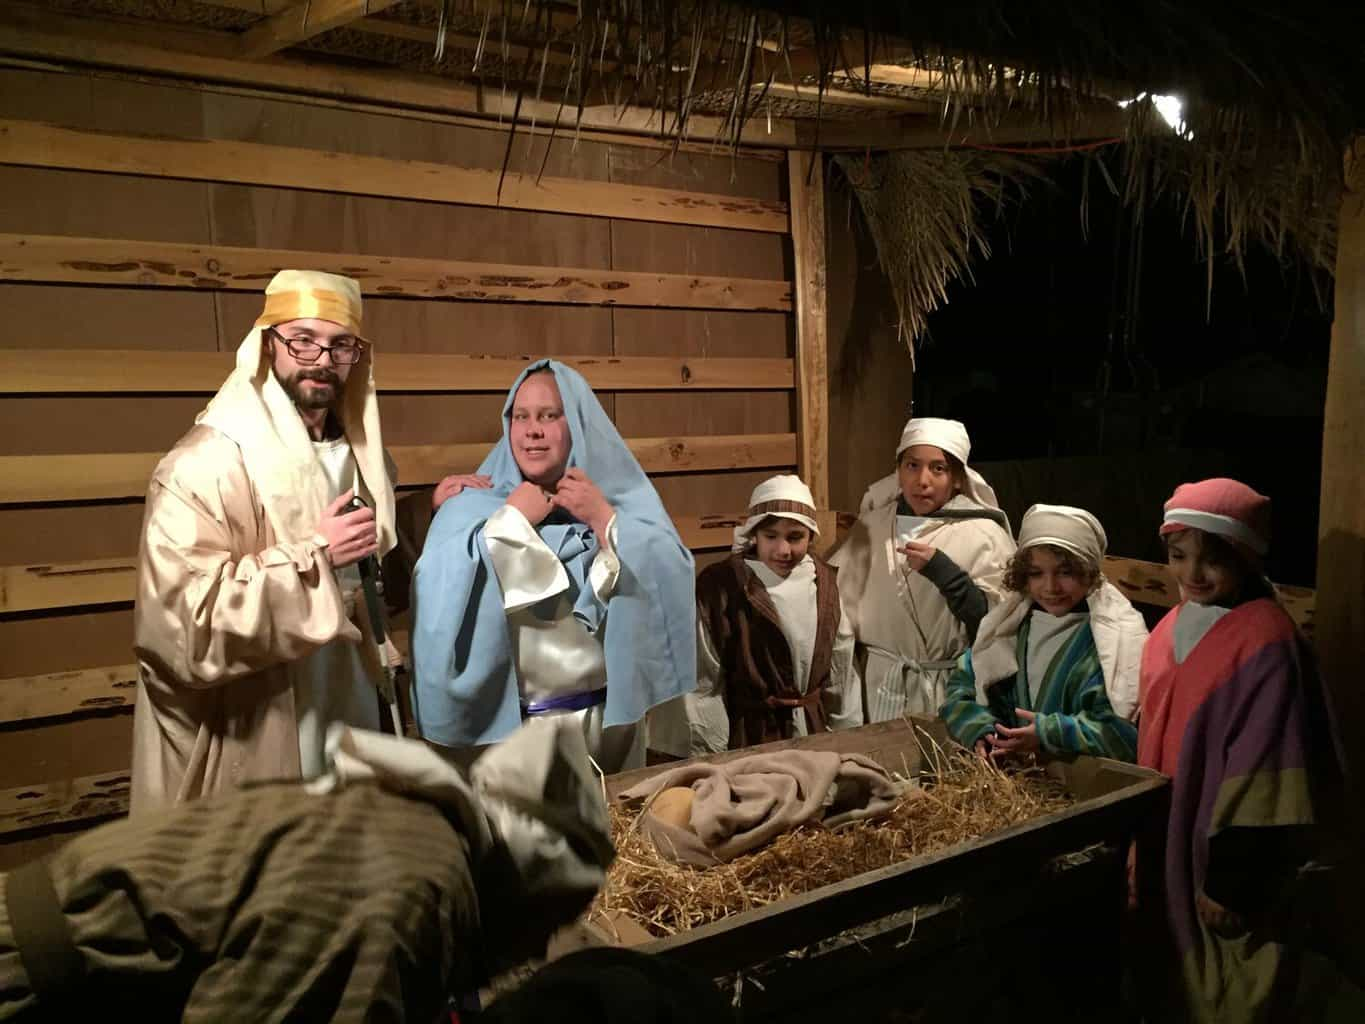 Live Nativity Near Me 2018